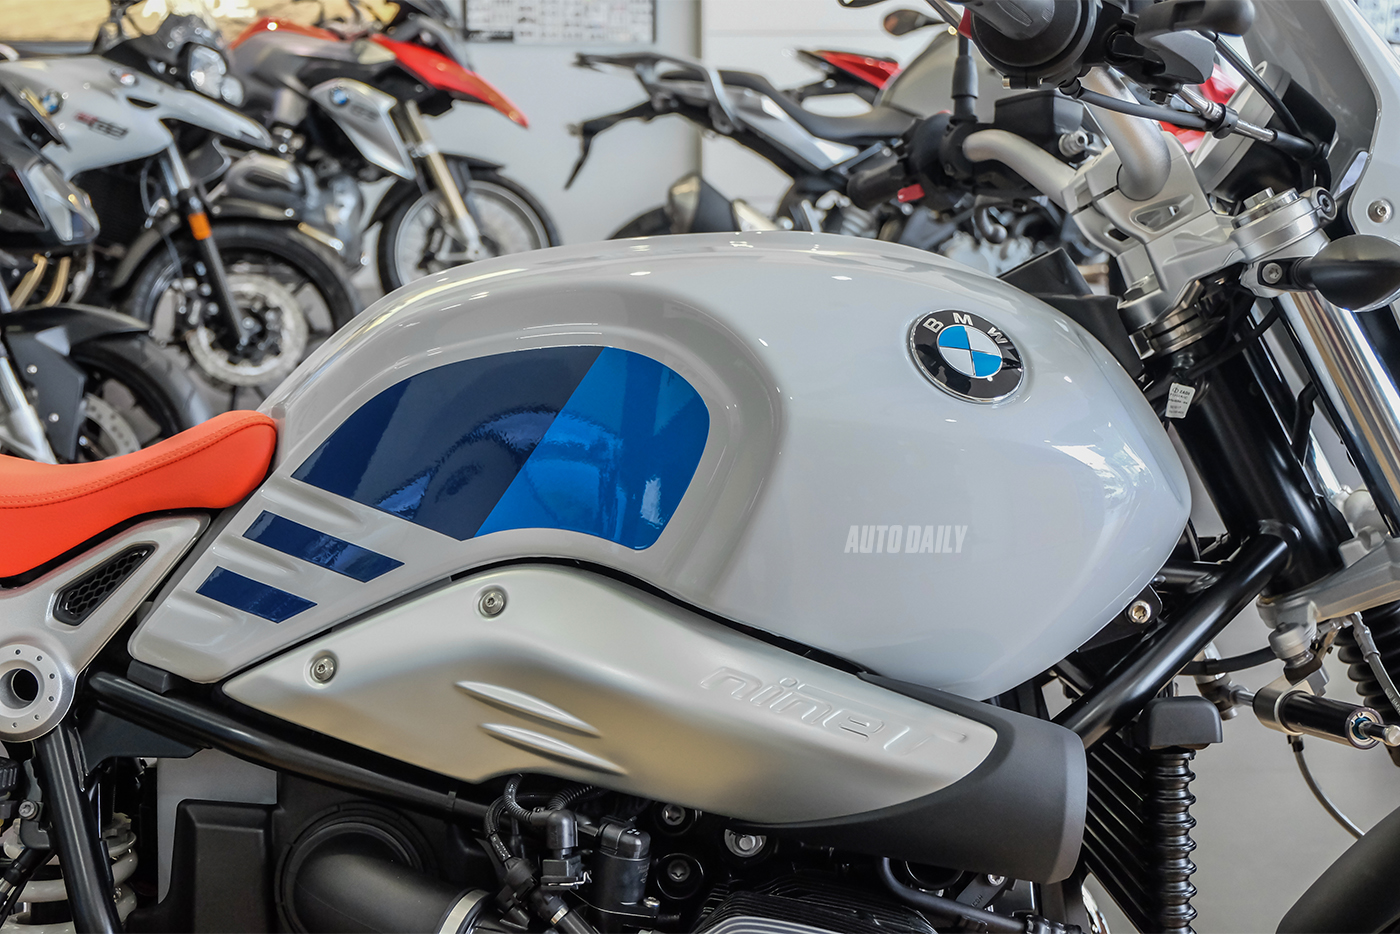 bmw-r-ninet-urban-gs-14.jpg